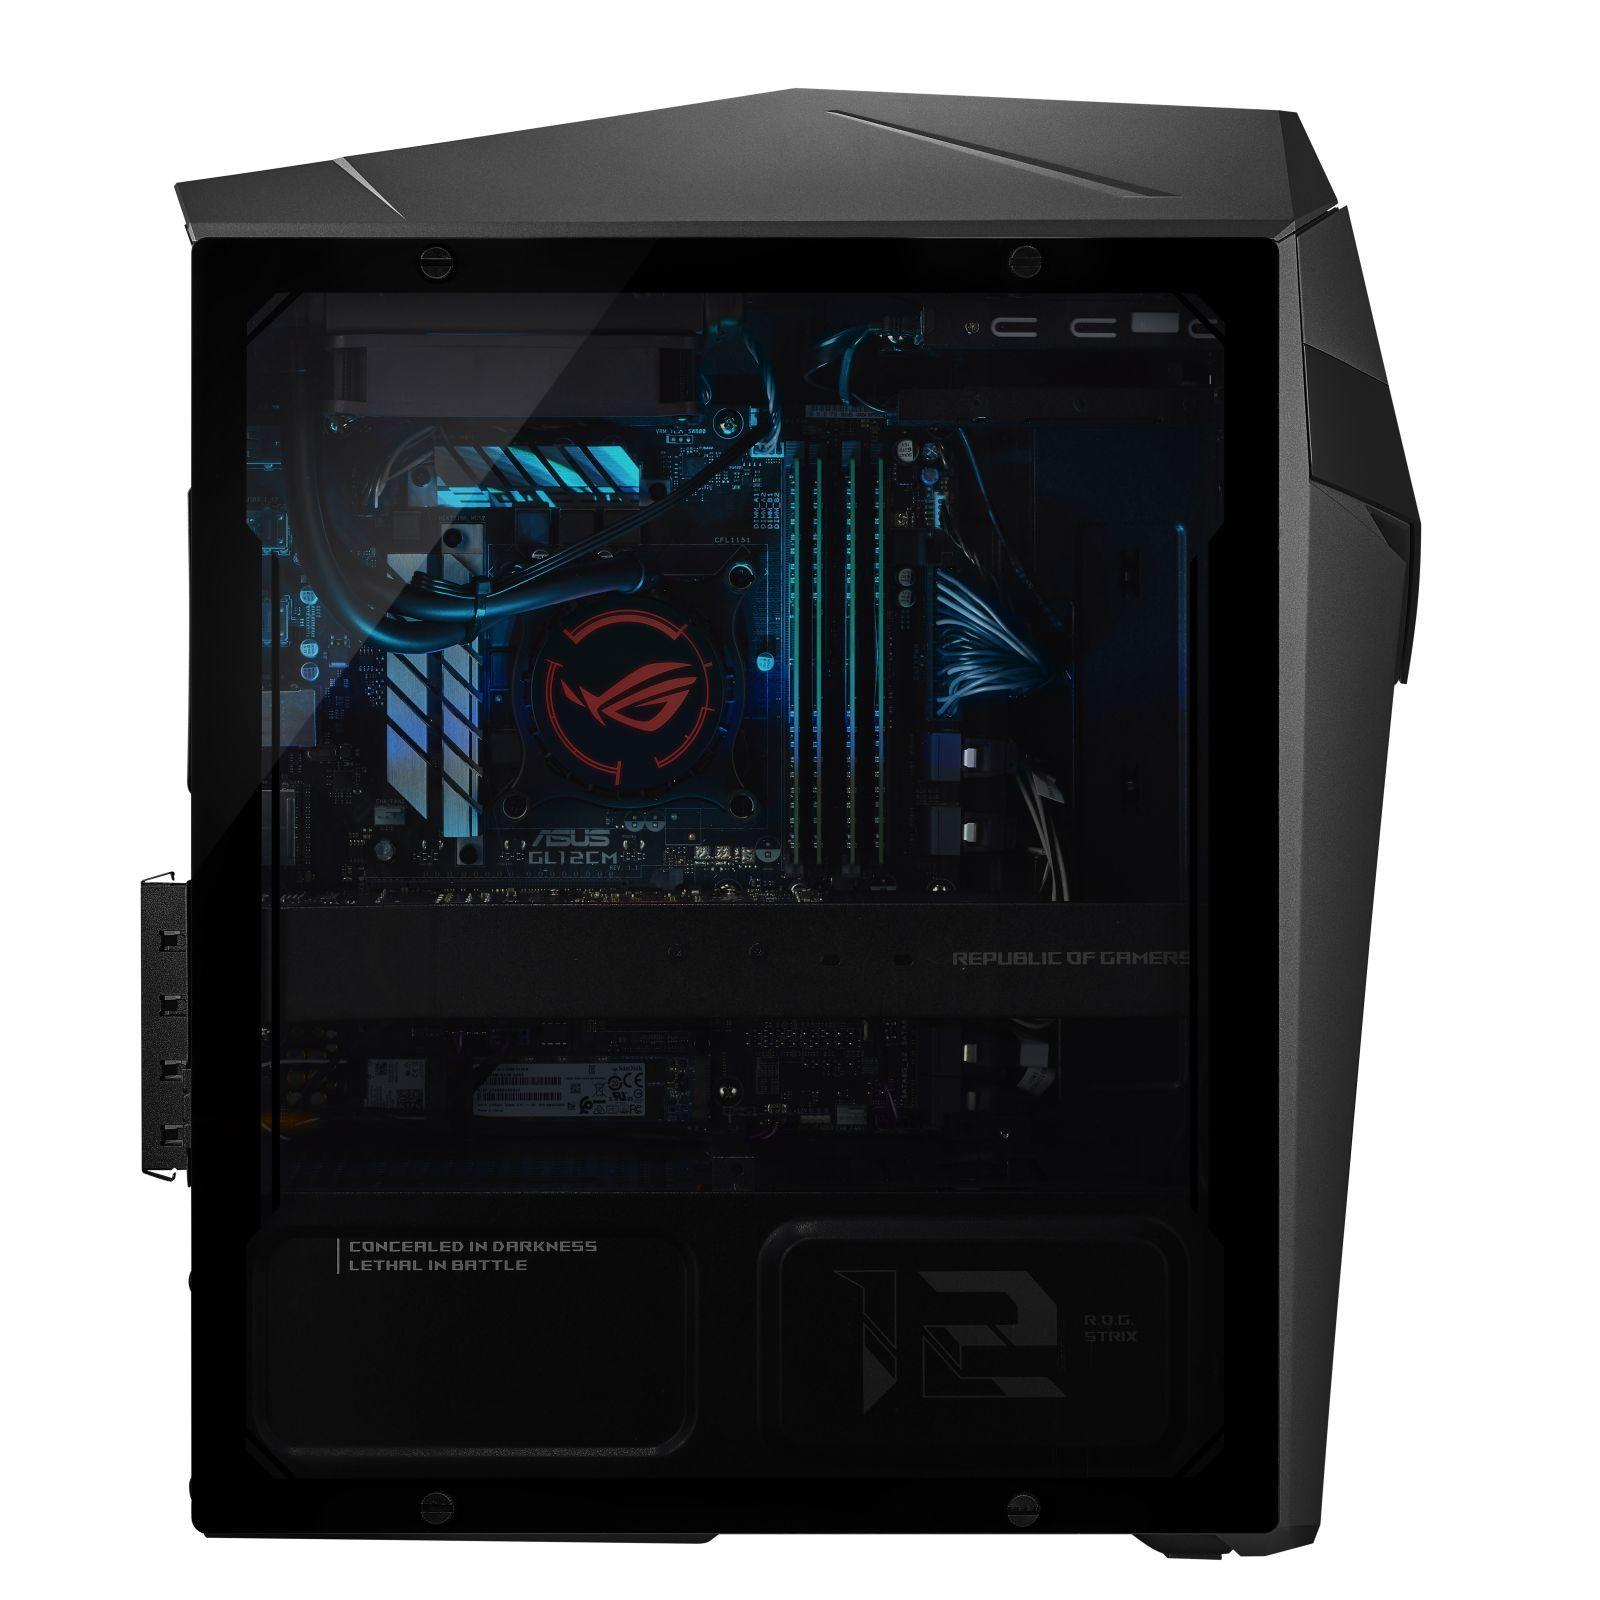 8th Gen ASUS ROG Strix GL12CM - SG010T (I7-8700 16GB 1TB+256GB SSD GTX1060) *END OF MONTH PROMO*